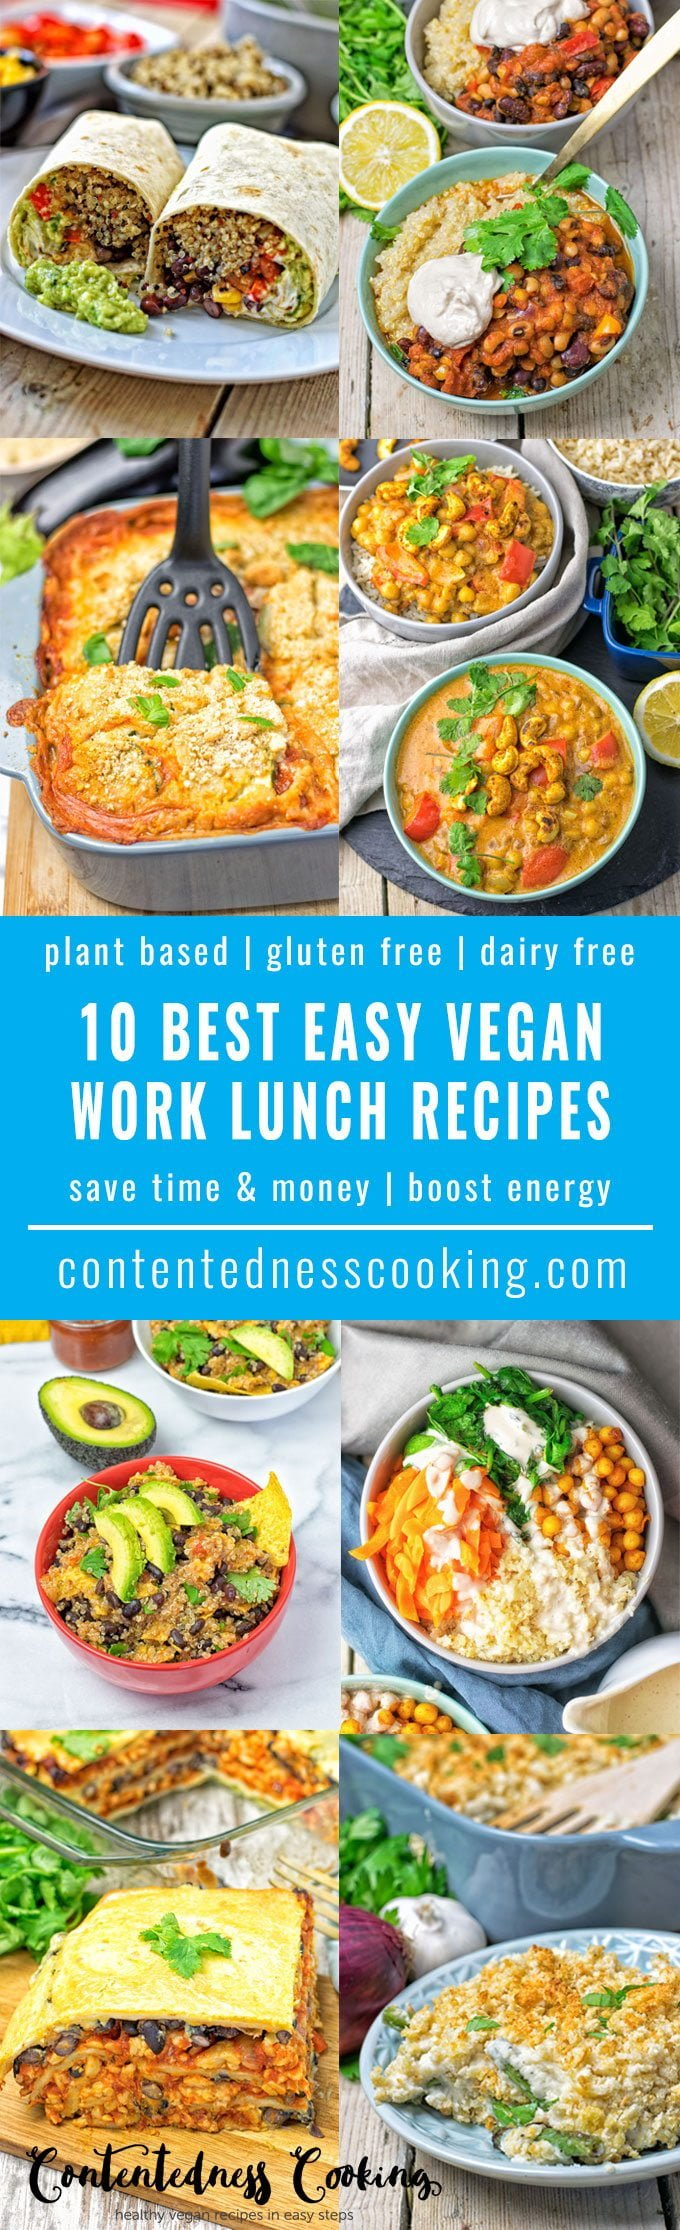 10 Best Easy Vegan Work Lunch Recipes | #vegan #glutenfree #plantbased #dairyfree #contentednesscooking